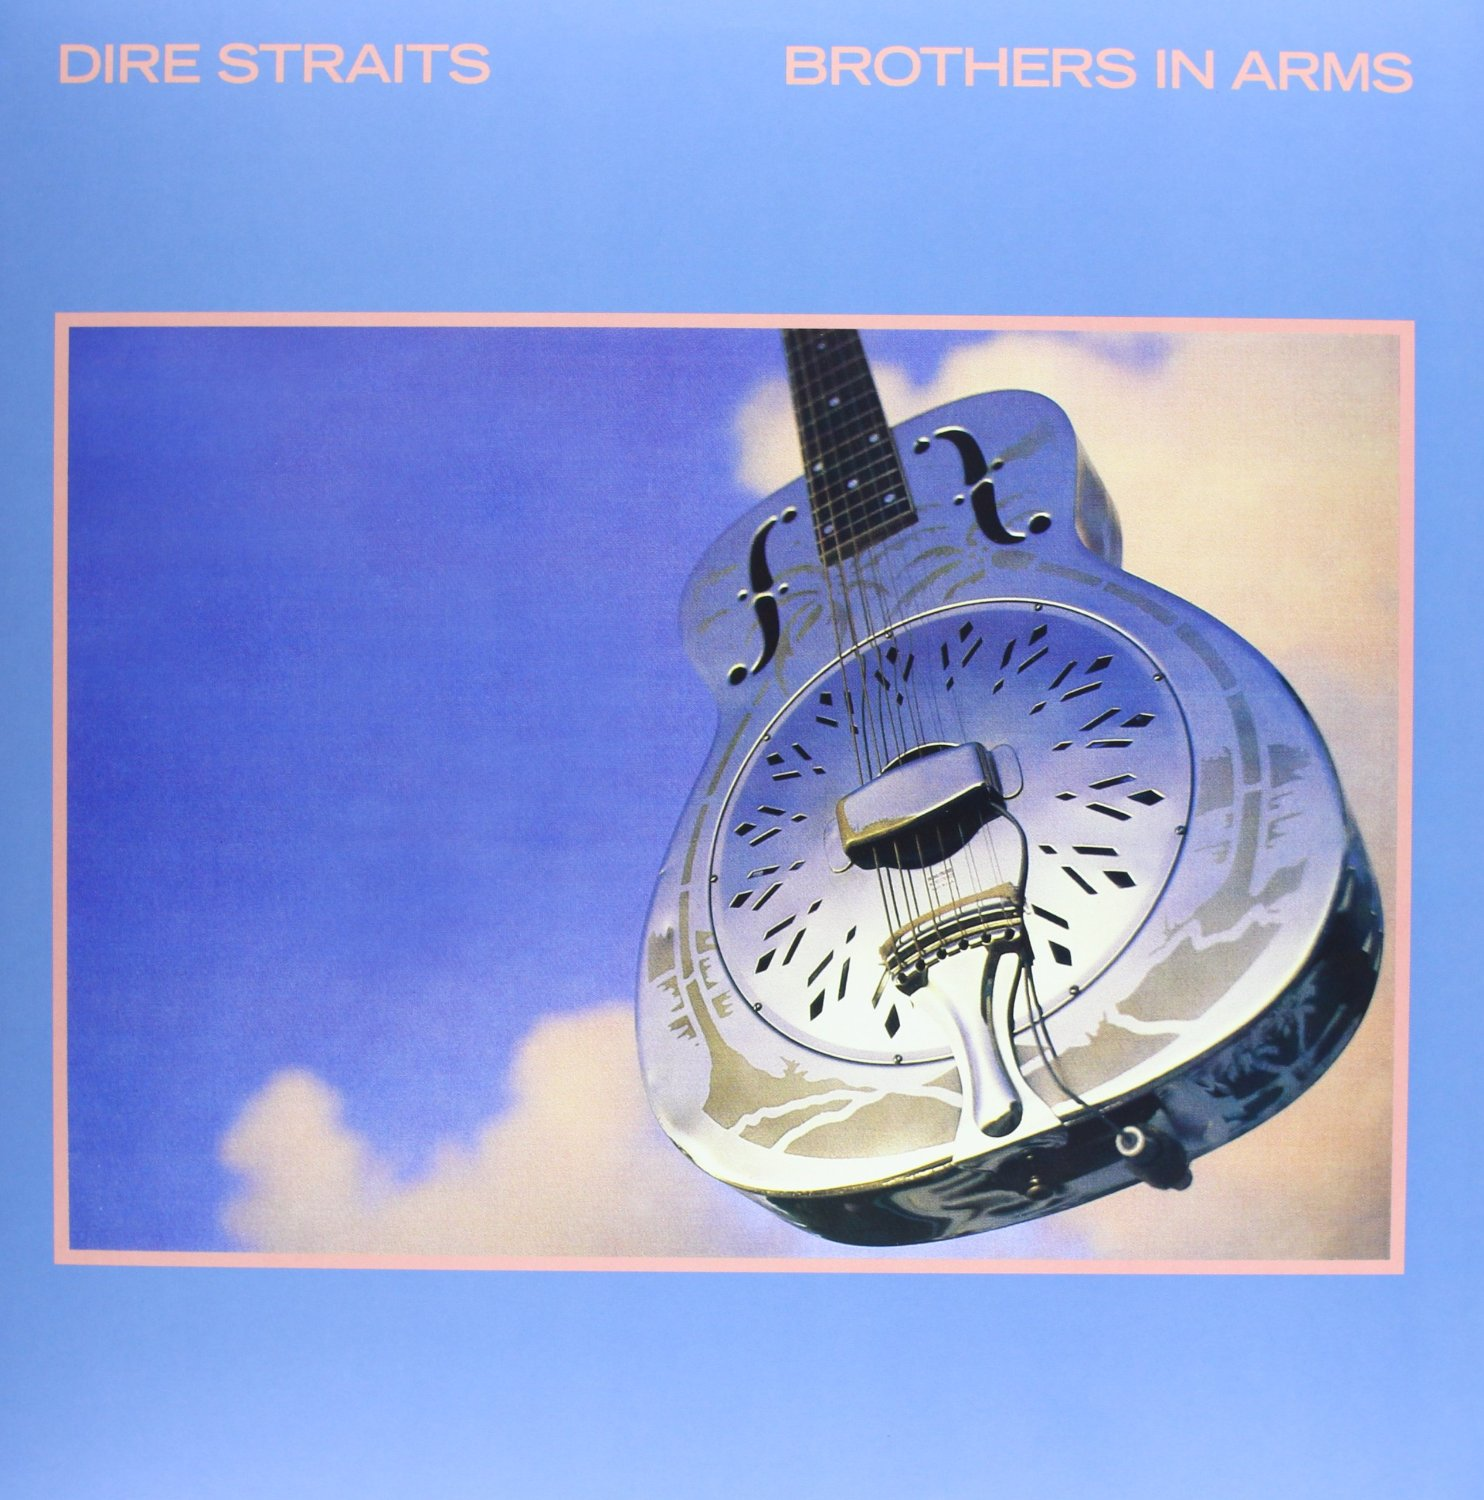 Brothers in Arms (album) - Wikipedia